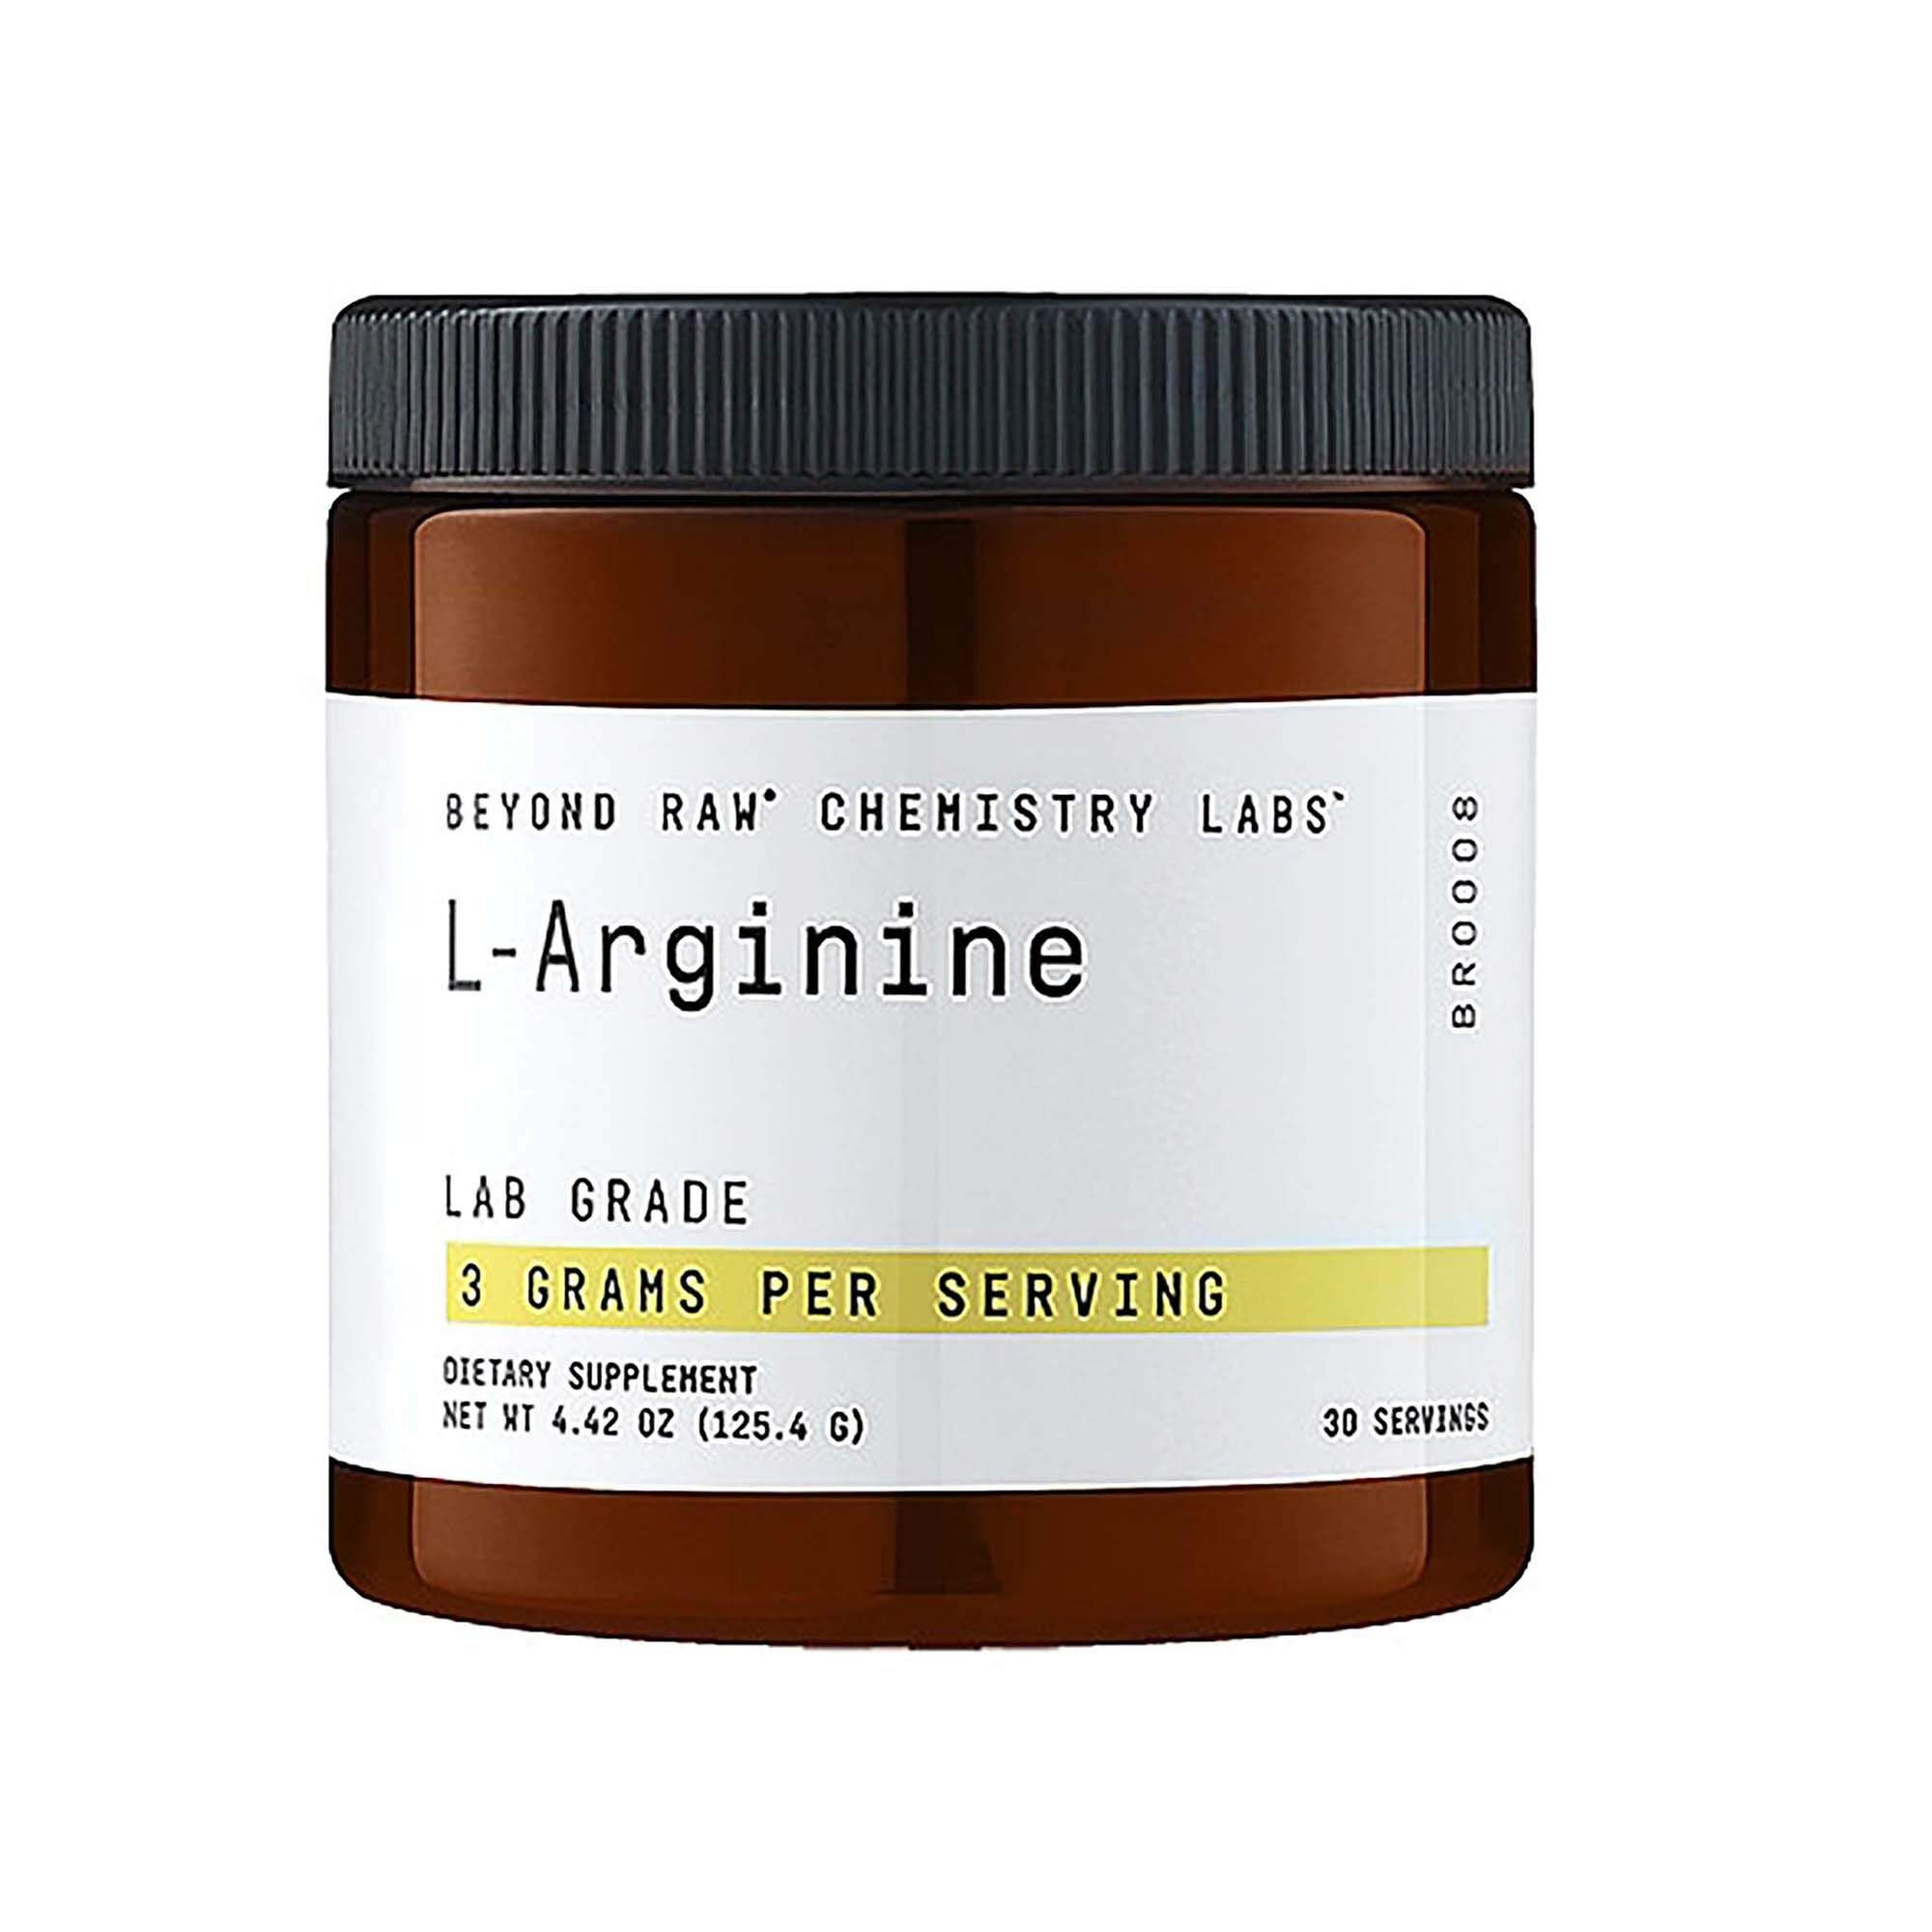 Beyond Raw Chemistry Labs L-Arginine, 30 Servings by BEYOND RAW